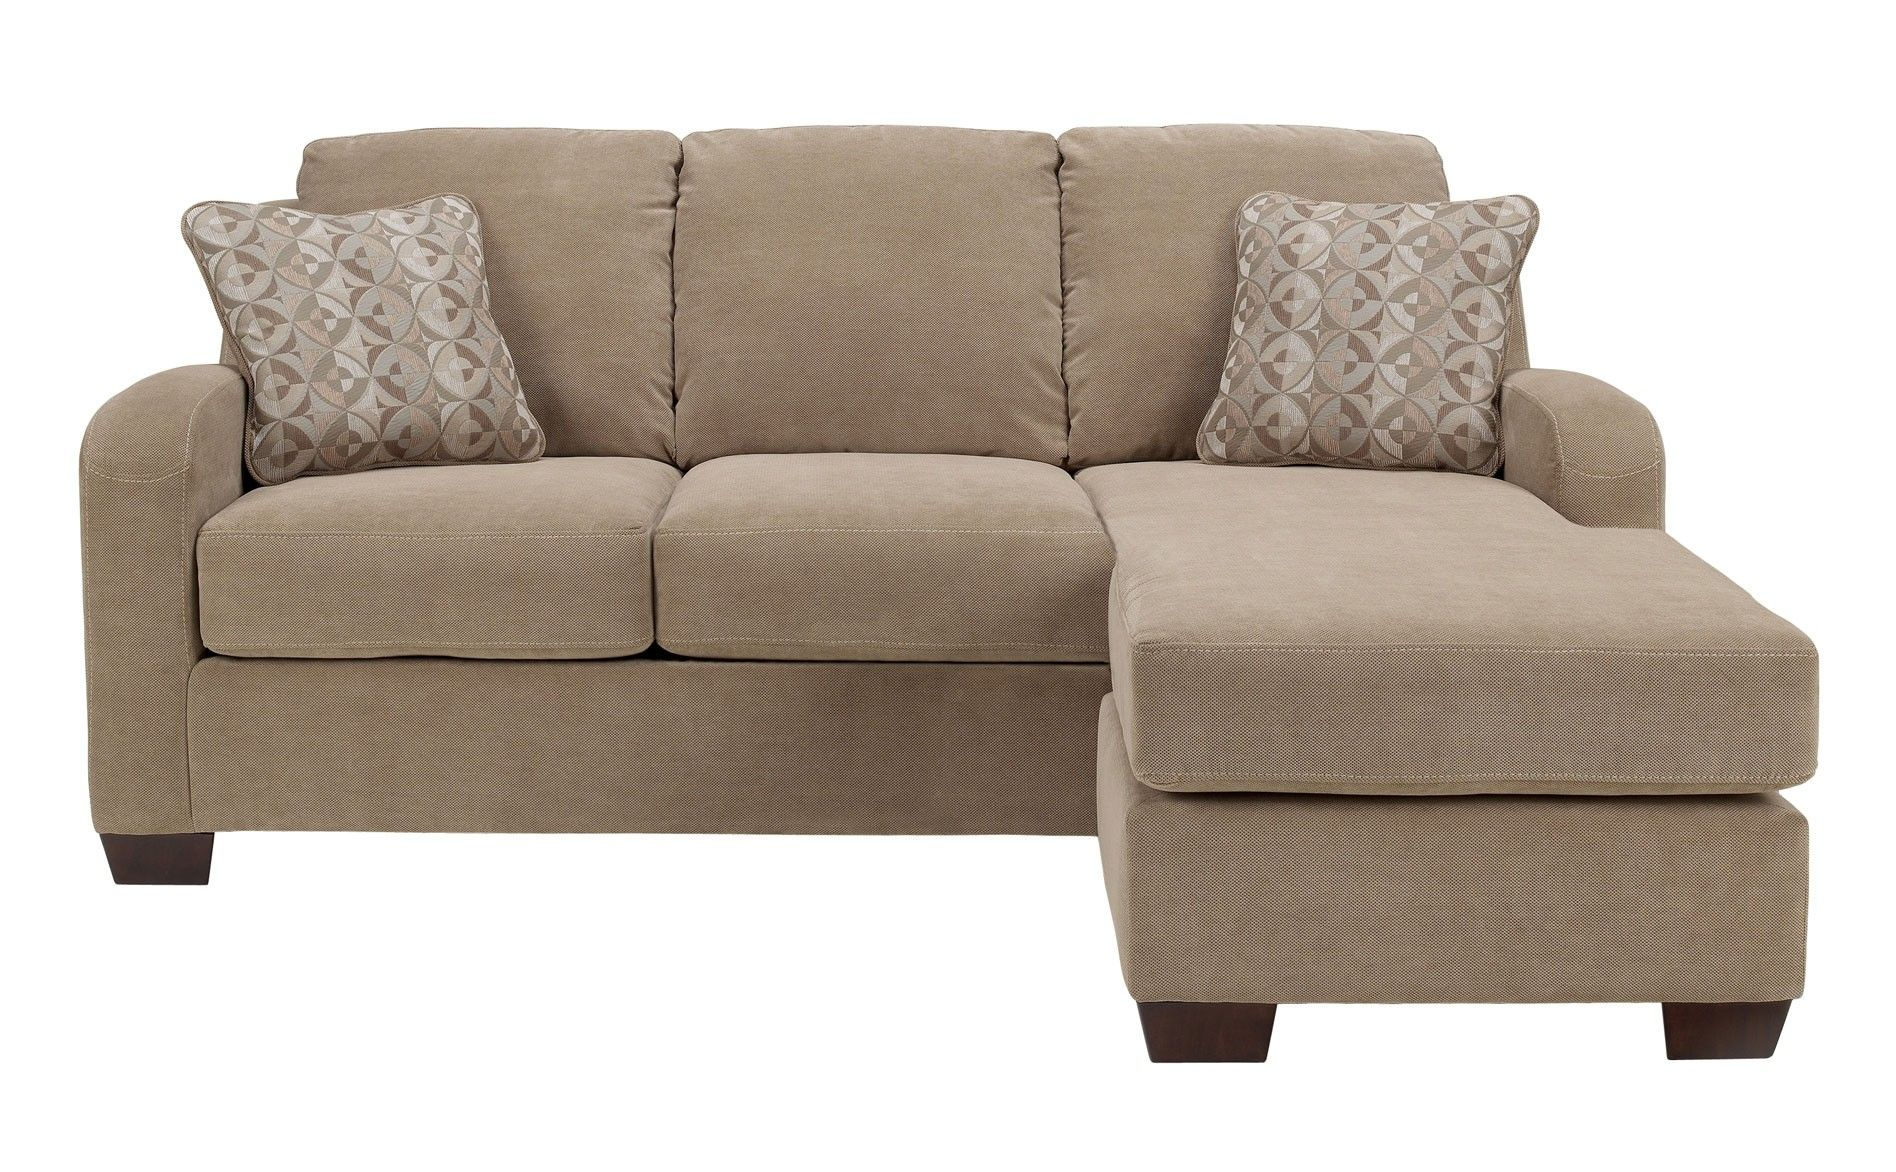 sectional sofas with chaise | Ashley Circa Sofa Chaise - Taupe ...